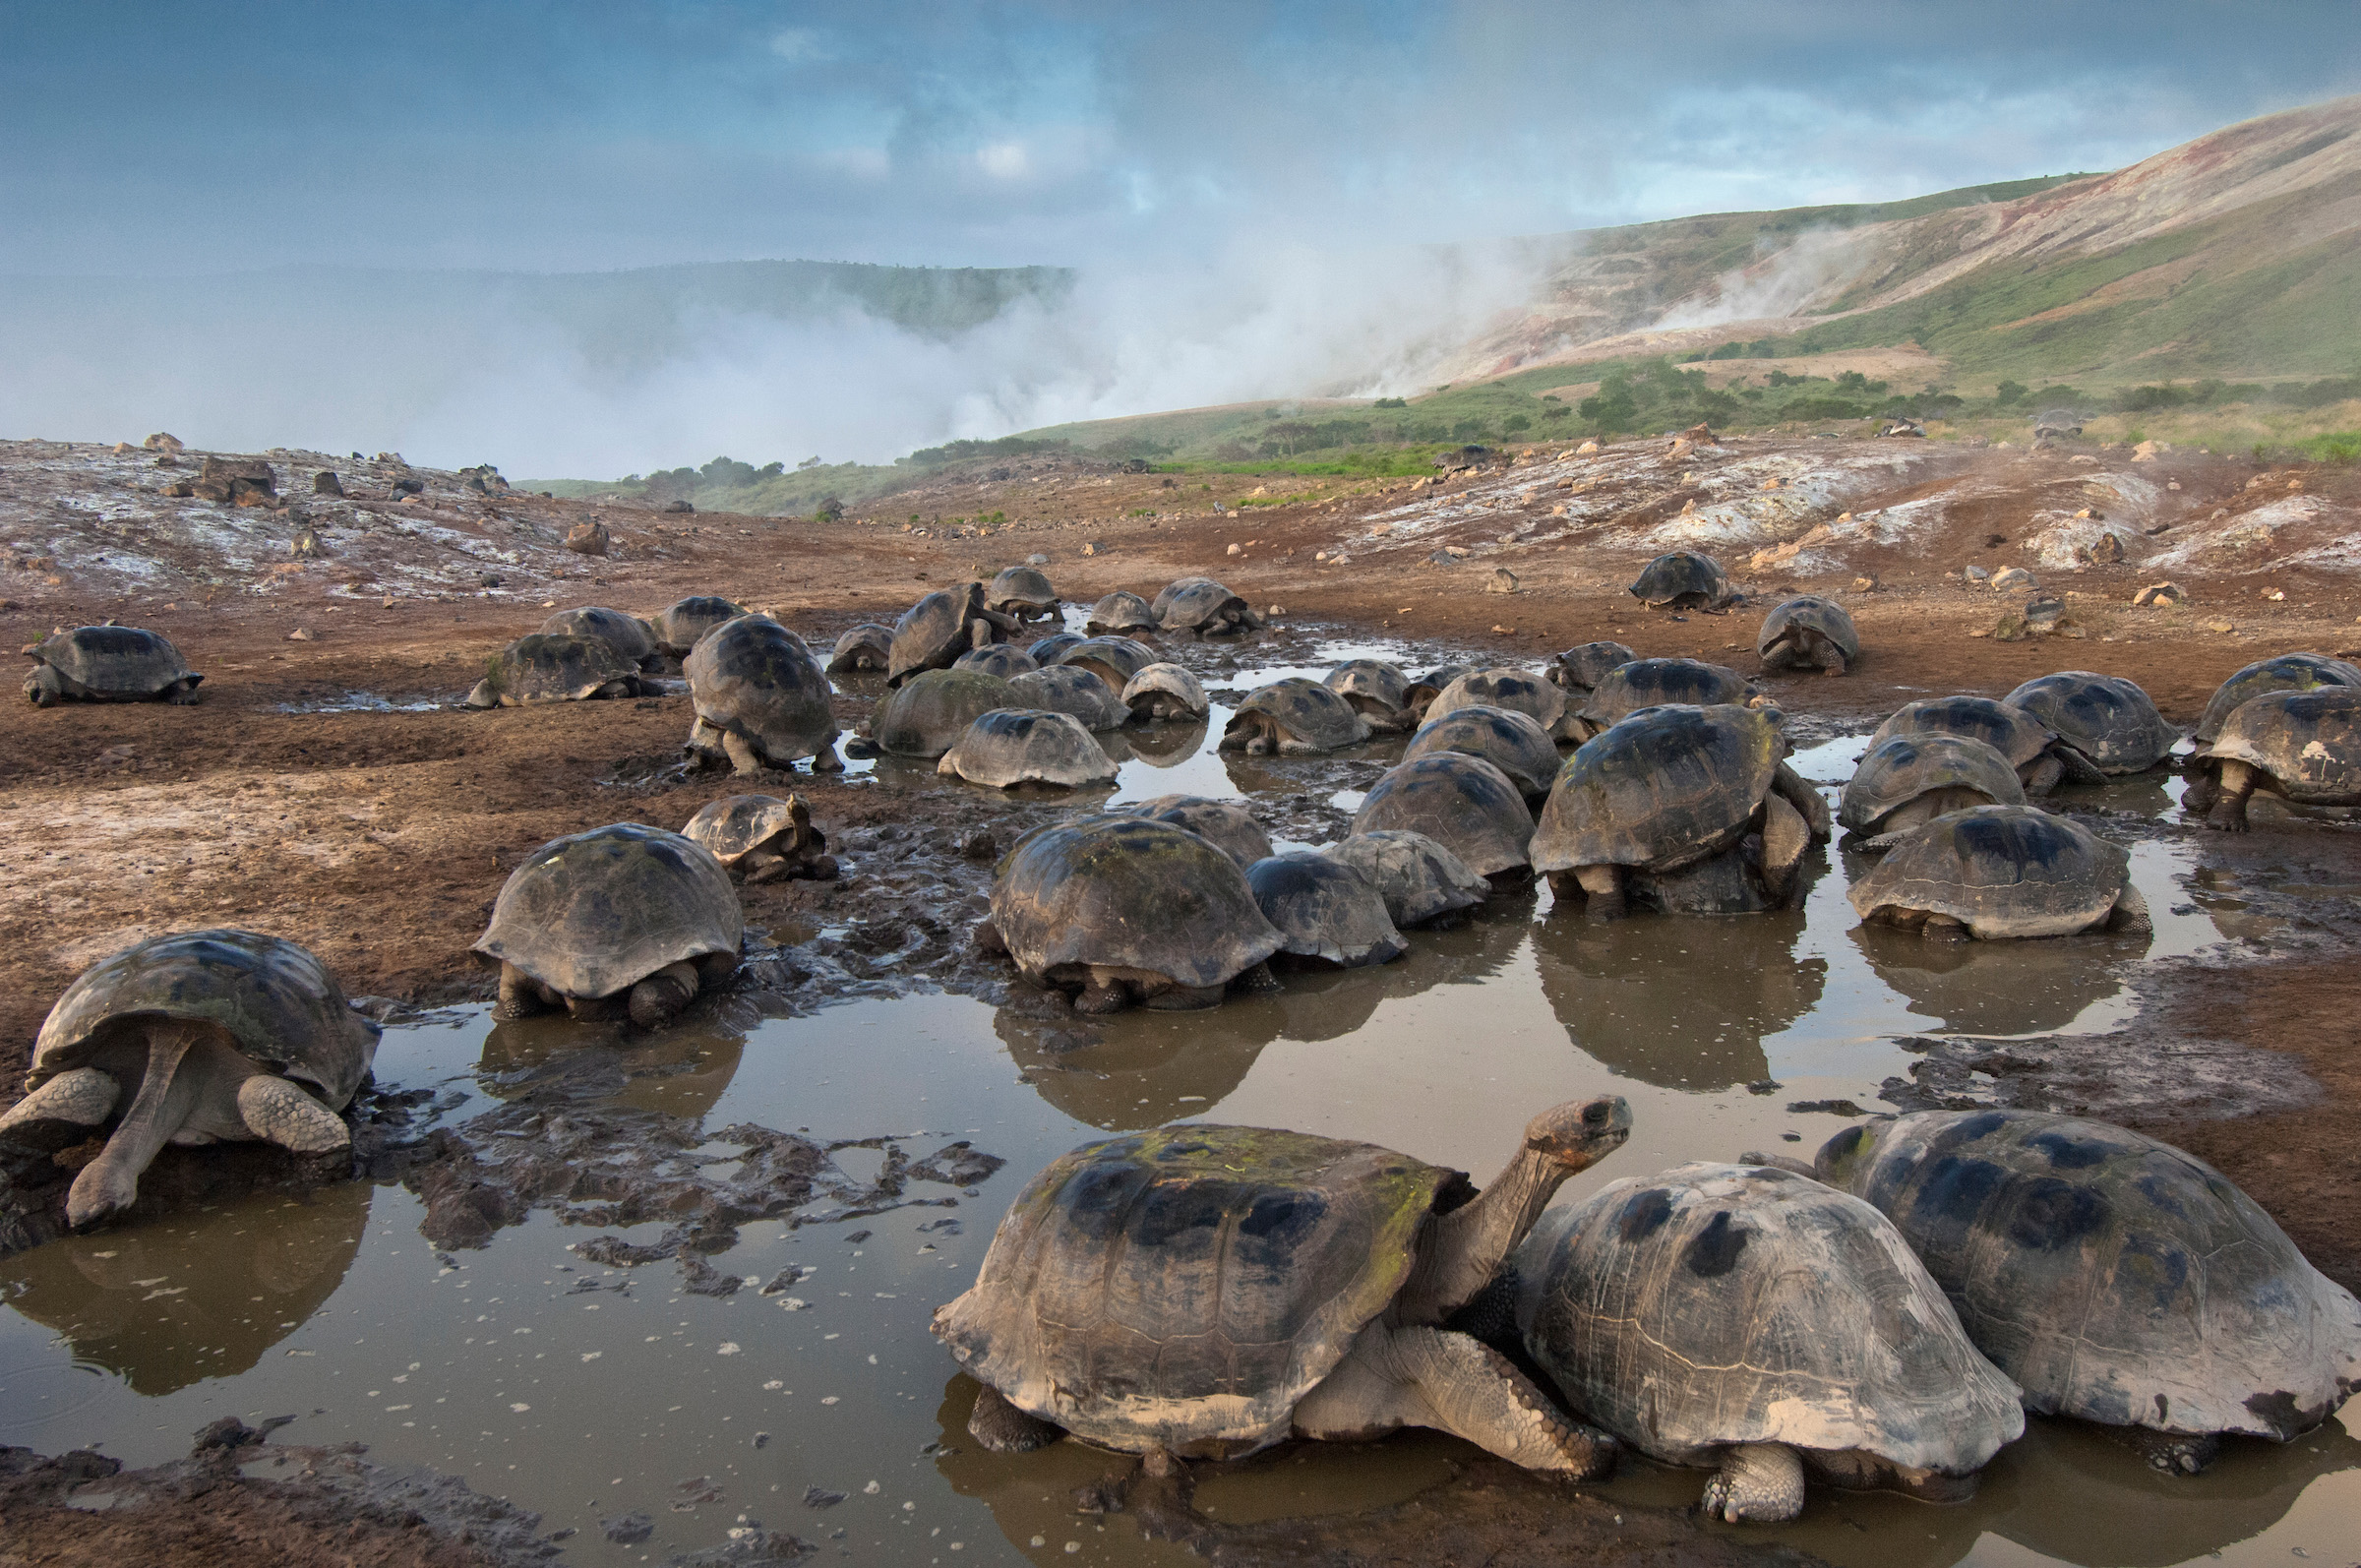 The massive tortoises are an incredible sight for visitors.